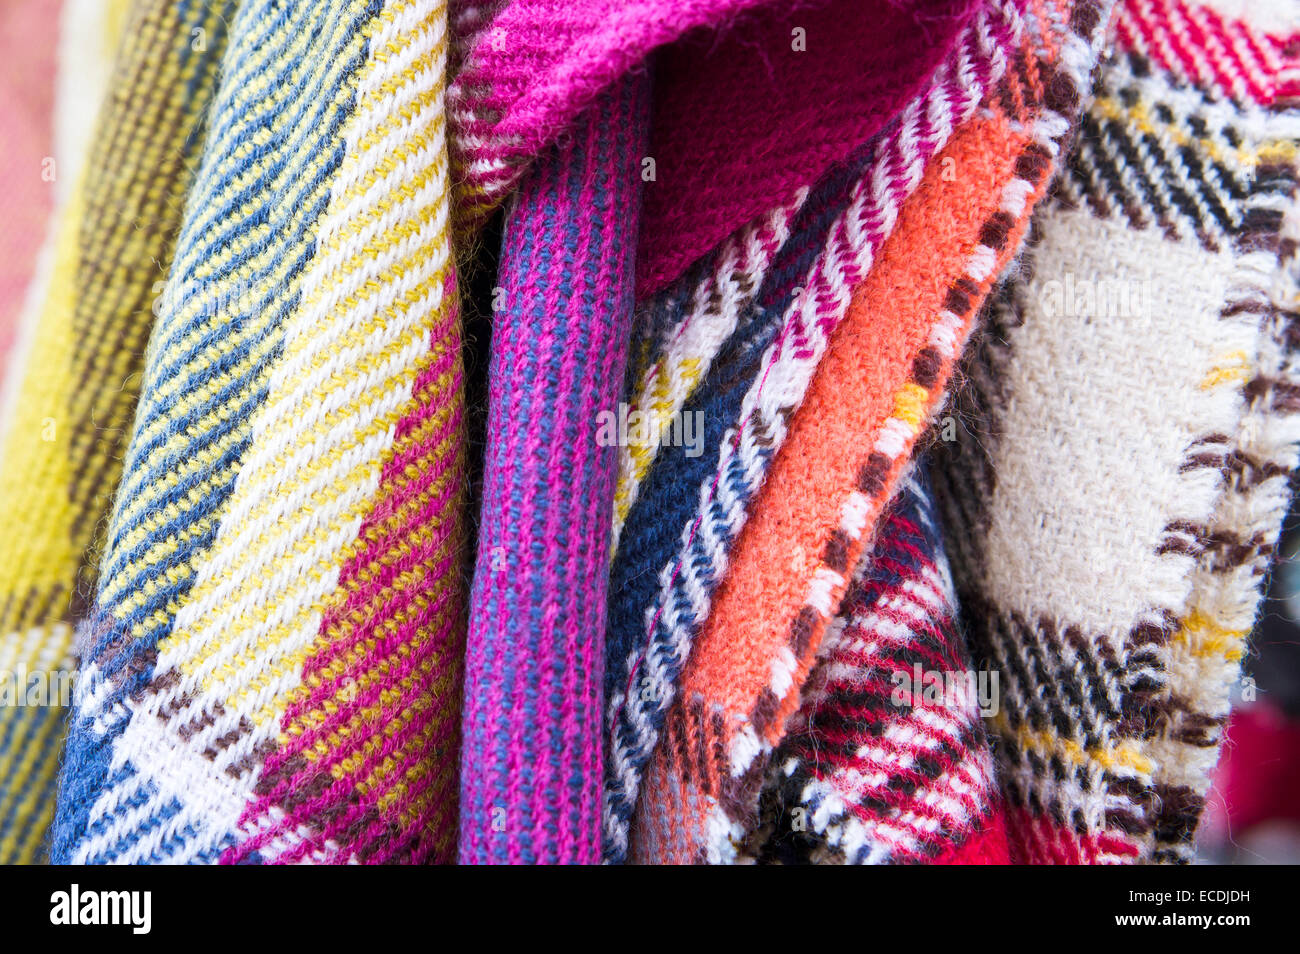 Close up of selection of wool blankets - Stock Image